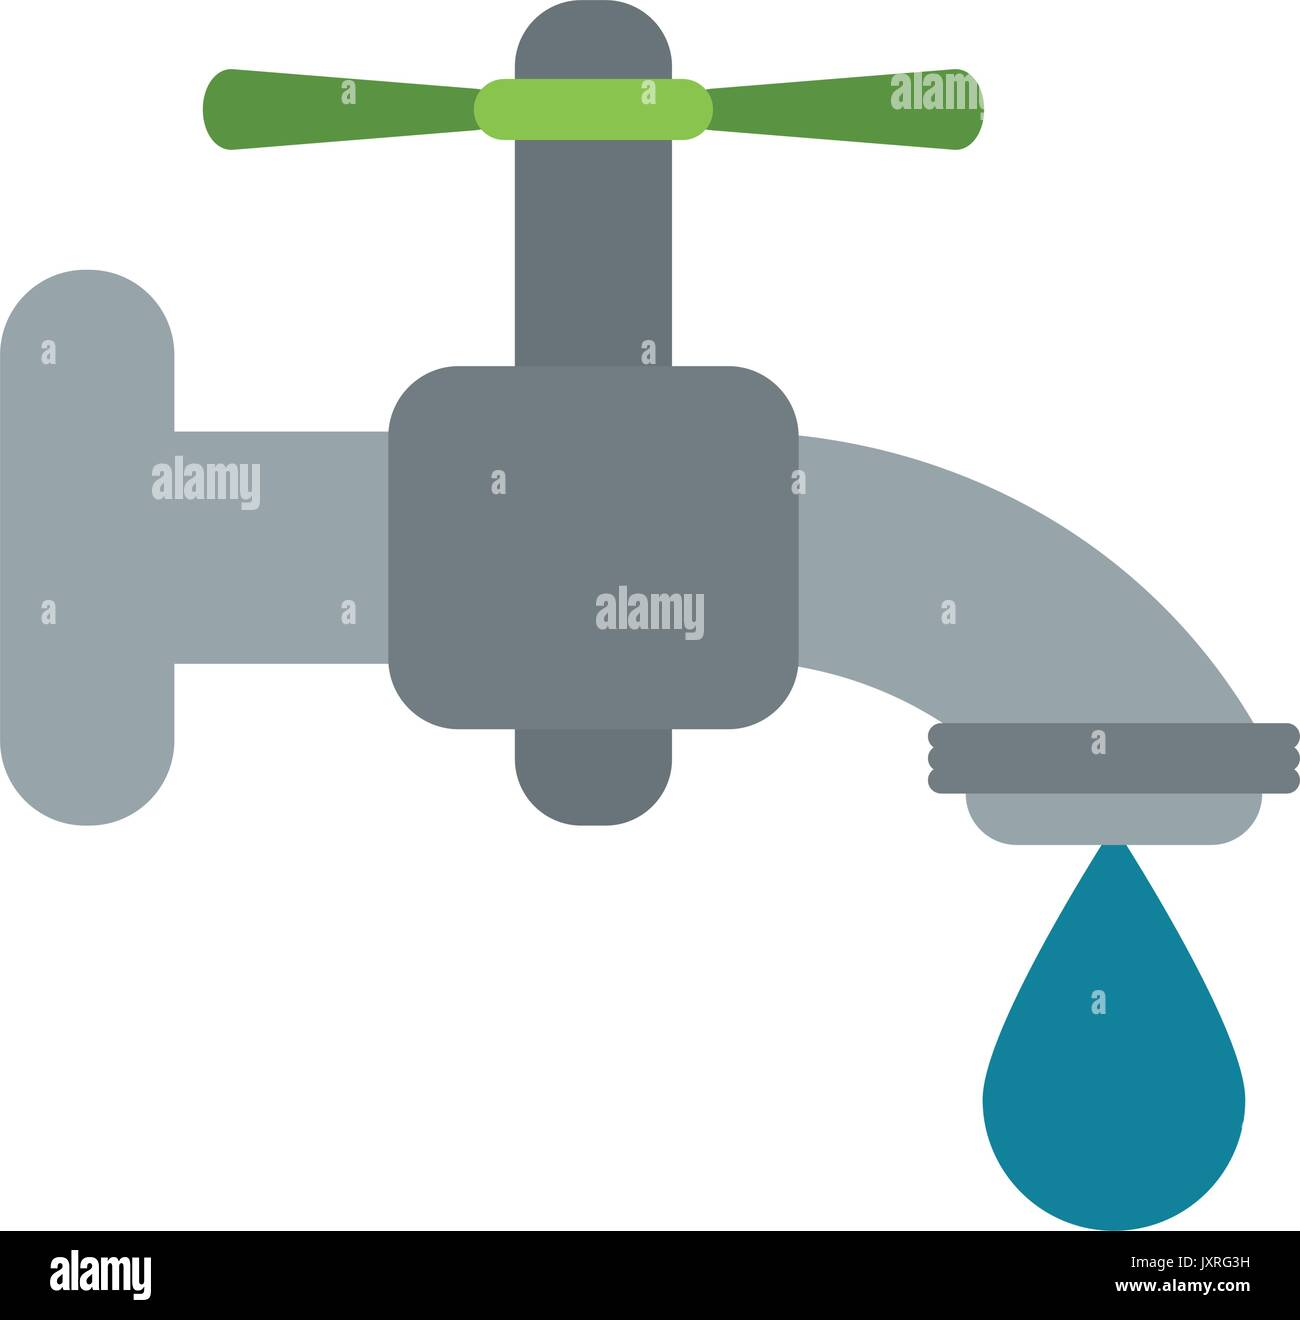 faucet with water droplet icon image - Stock Image